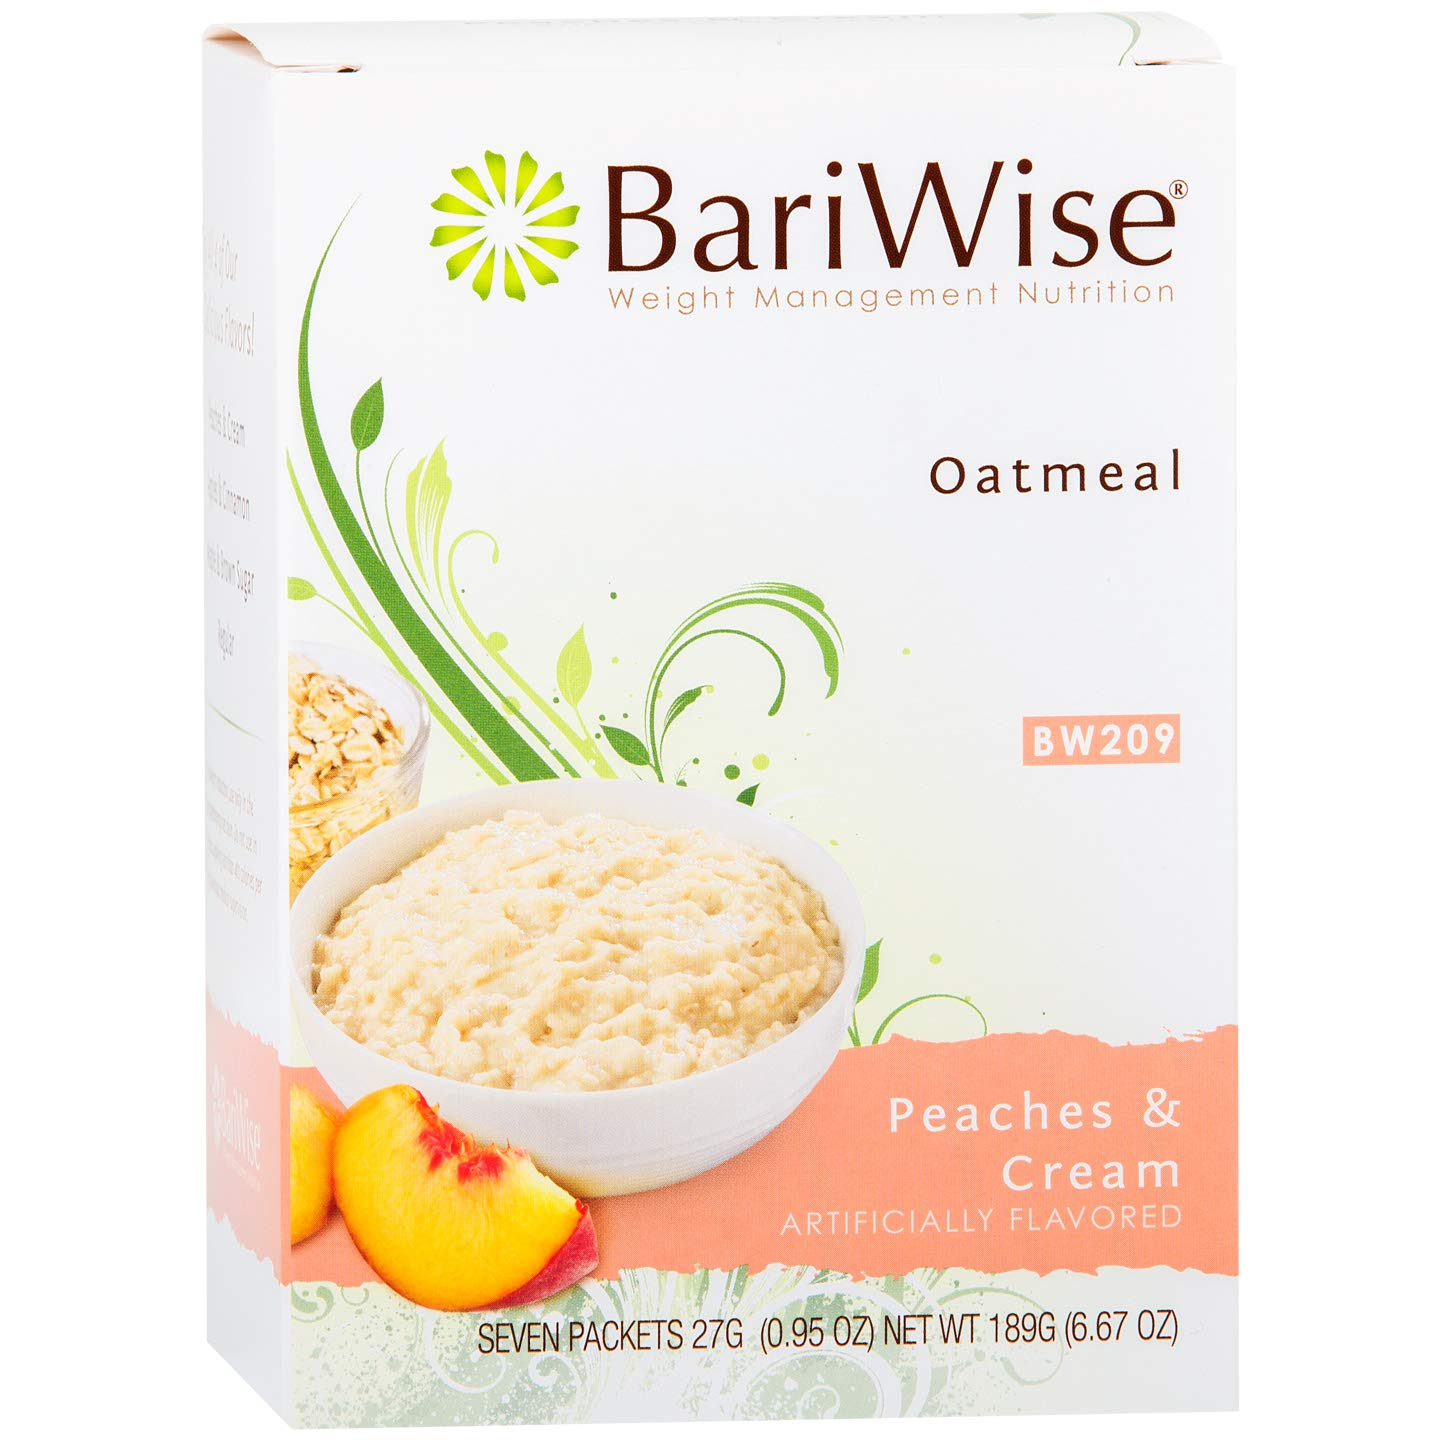 BariWise Low-Carb High Protein Oatmeal / Instant Diet Hot Oatmeals - Peaches & Cream (7 Servings/Box) - Low Carb, Low Calorie, Low Fat, Aspartame Free